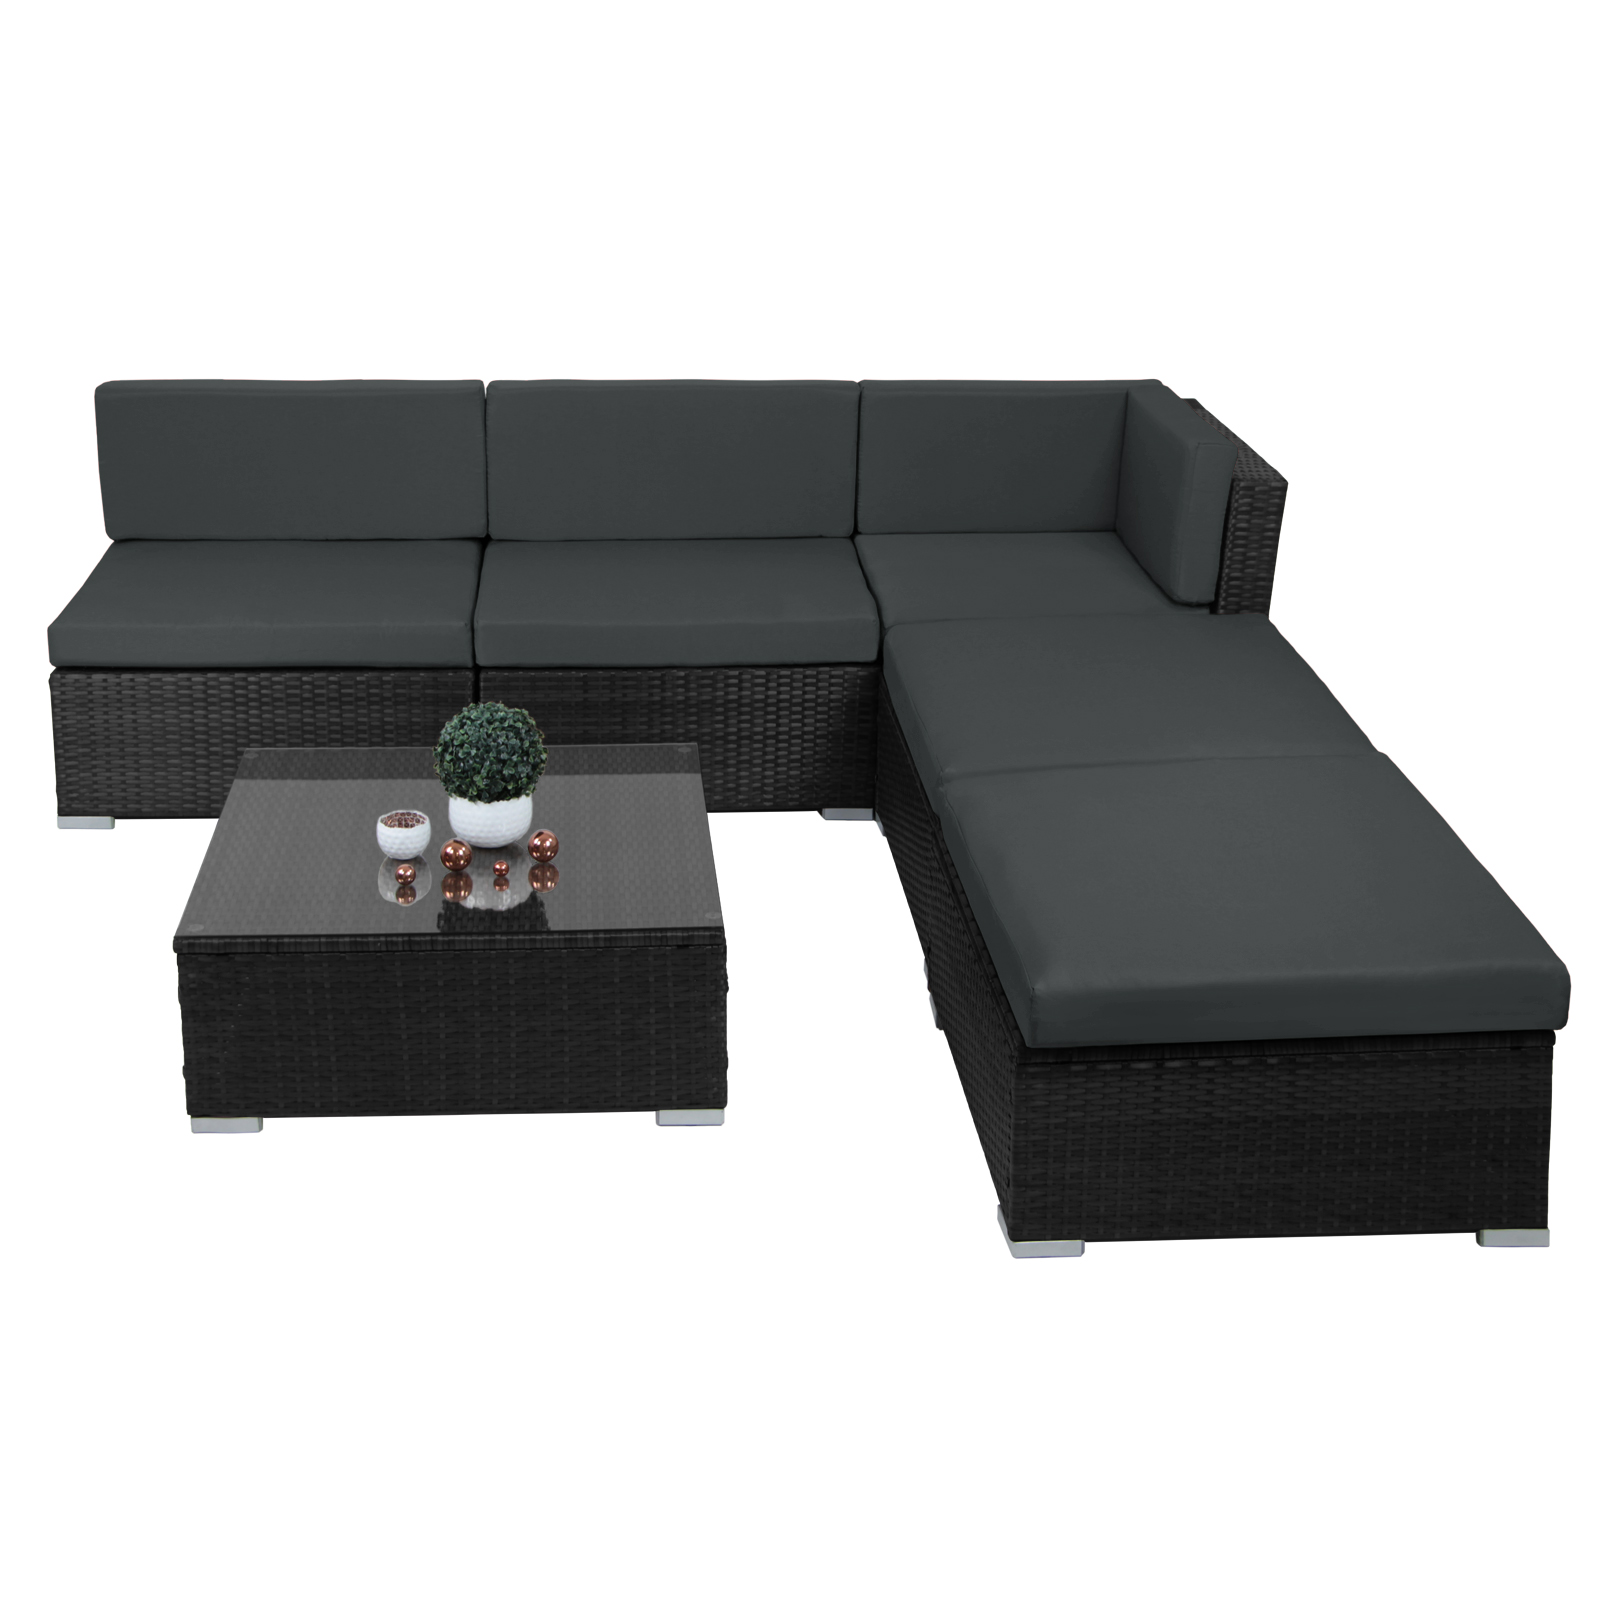 Full Size of Polyrattan Sofa Lounge Outdoor Gartensofa Garden Set 2 Sitzer Balkon 2 Sitzer Couch Ausziehbar Rattan Tchibo 15 Teilige Gartengarnitur Sitzgruppe Erpo Bora Sofa Polyrattan Sofa